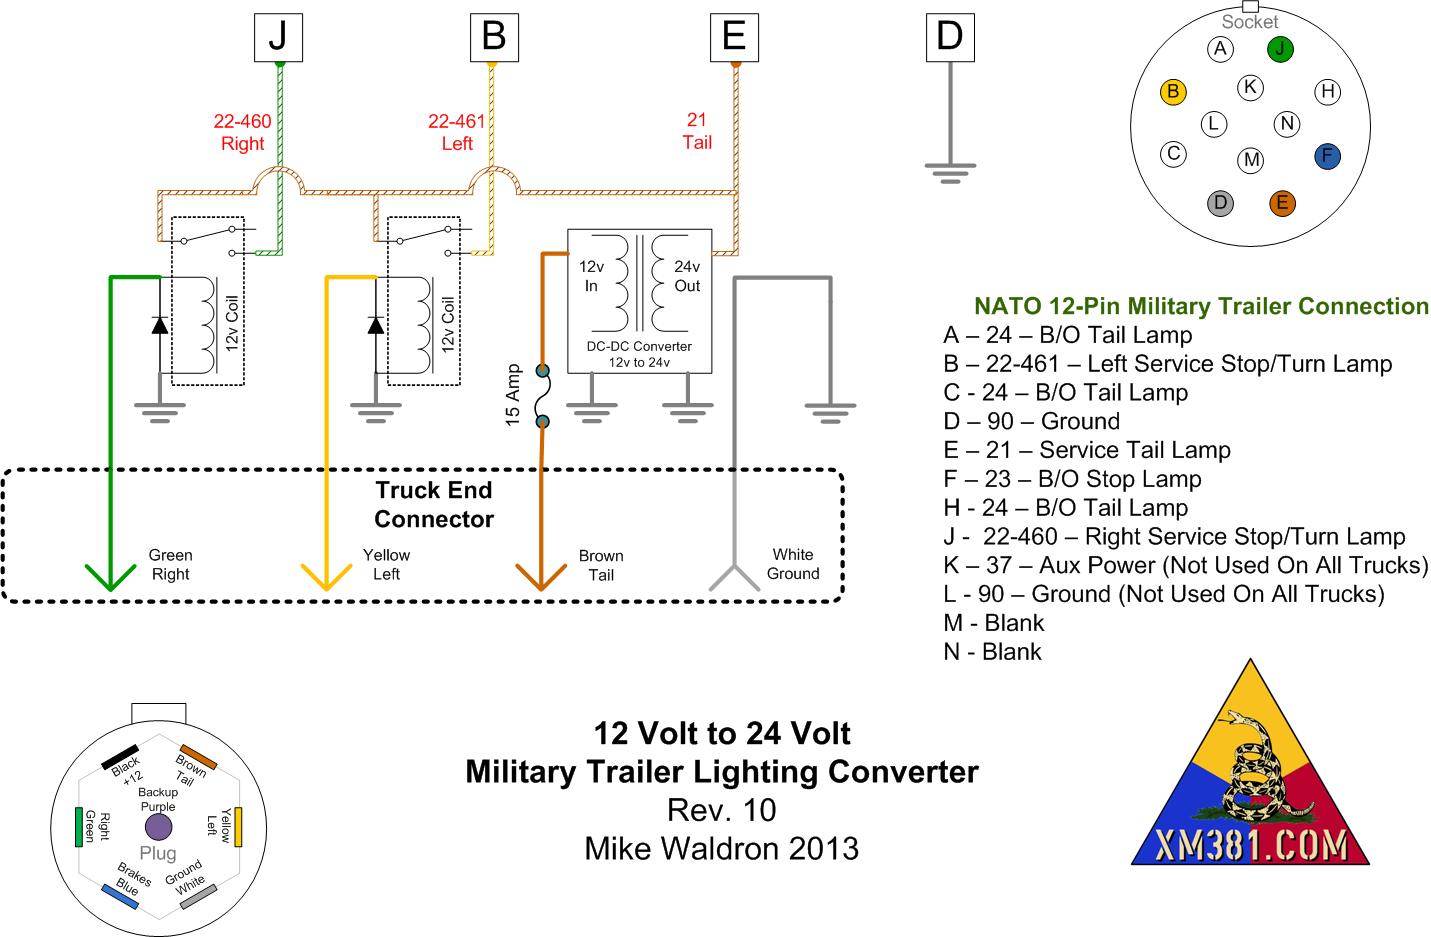 calico trailer wiring diagram for 7 pin trailer connector nato trailer wiring diagram #1